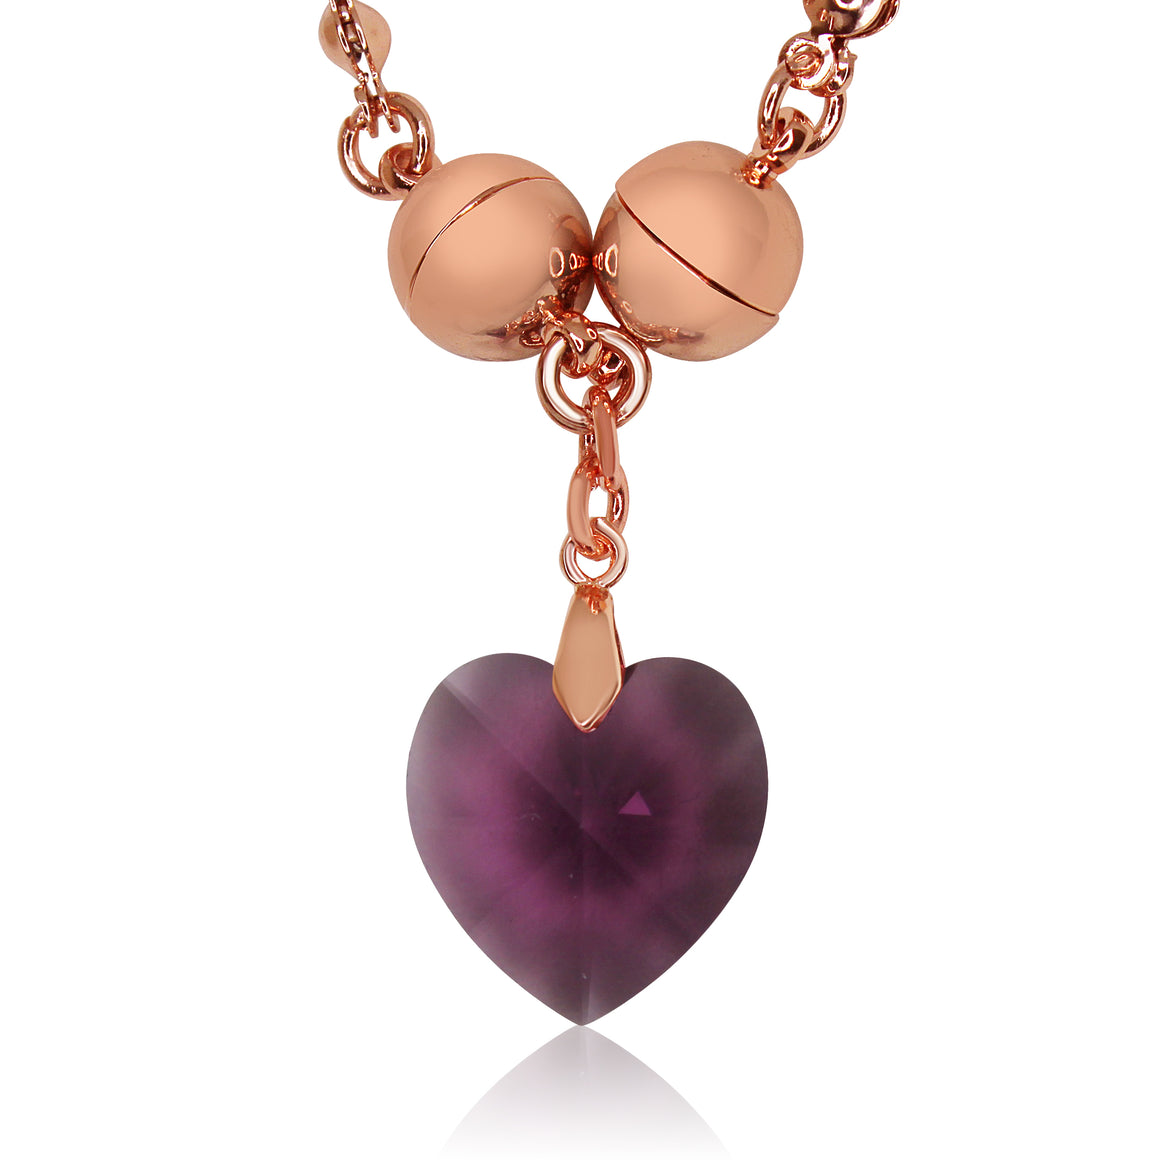 Swarovski Small Heart pendant - Amethyst - choose magnet colour